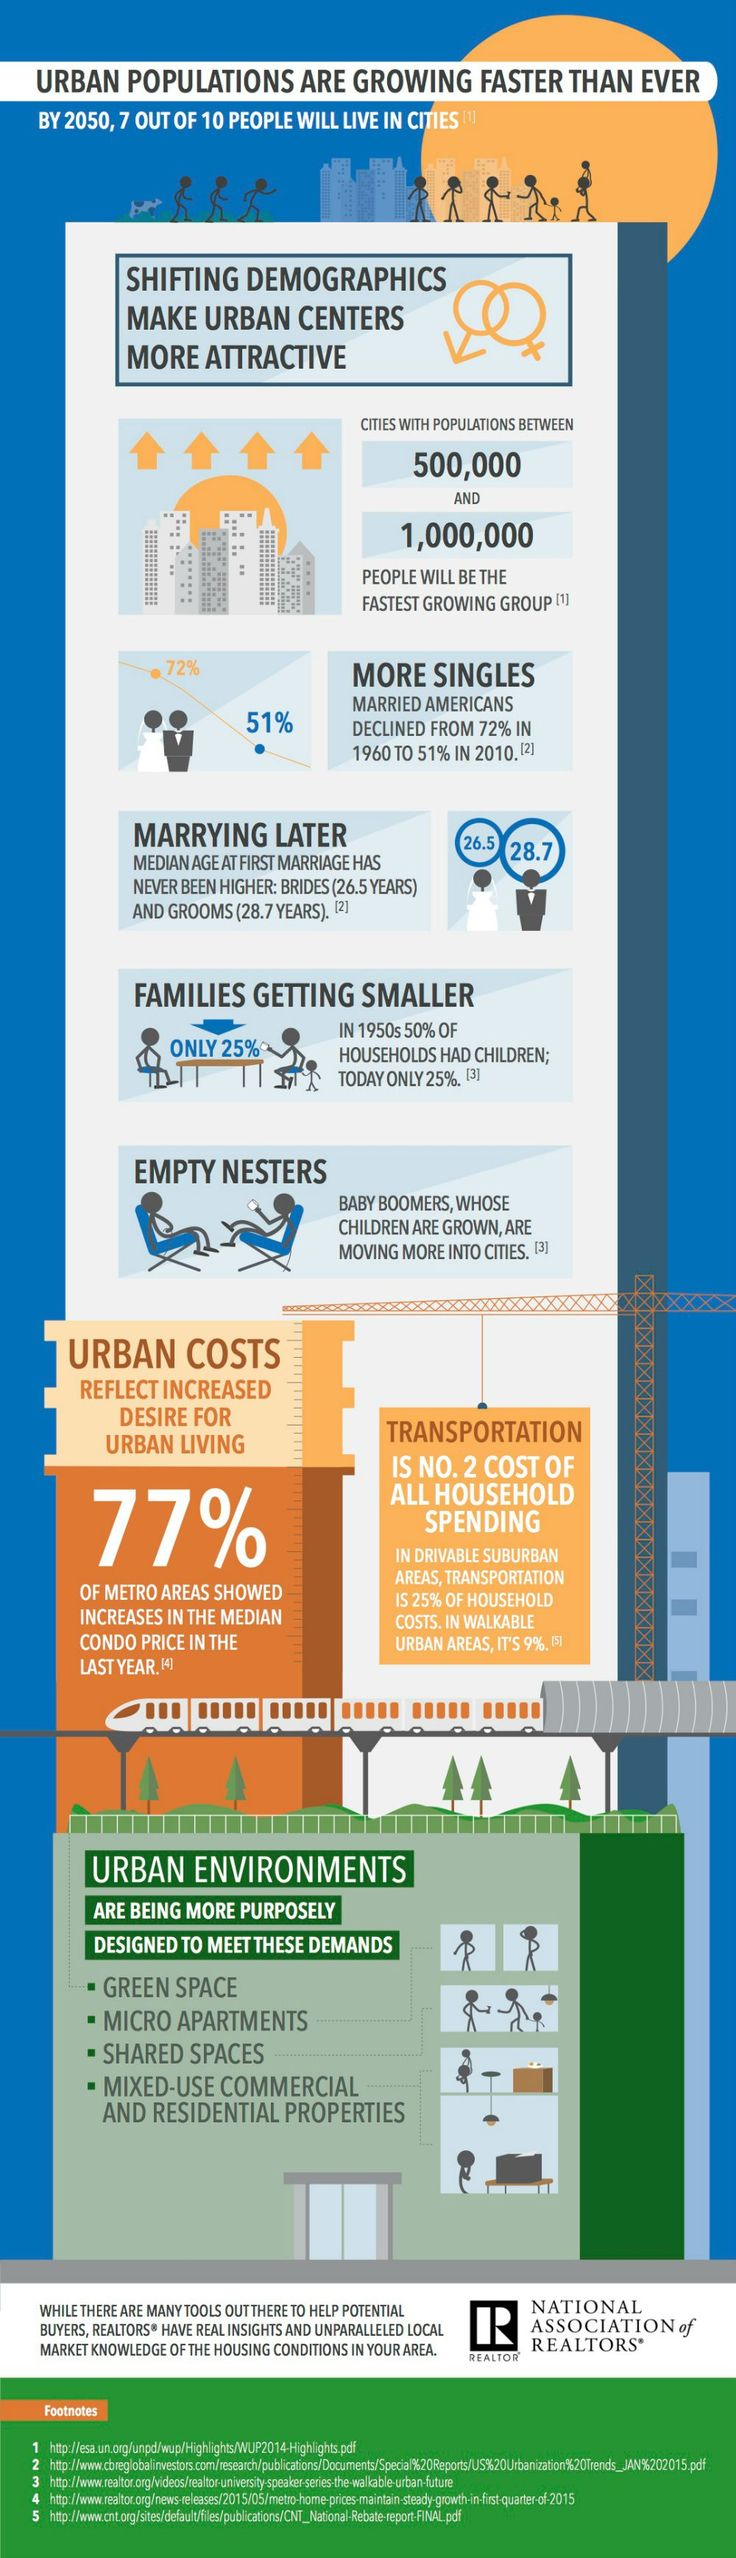 This infographic looks at the reasons for recent population growth in cities in the U.S.